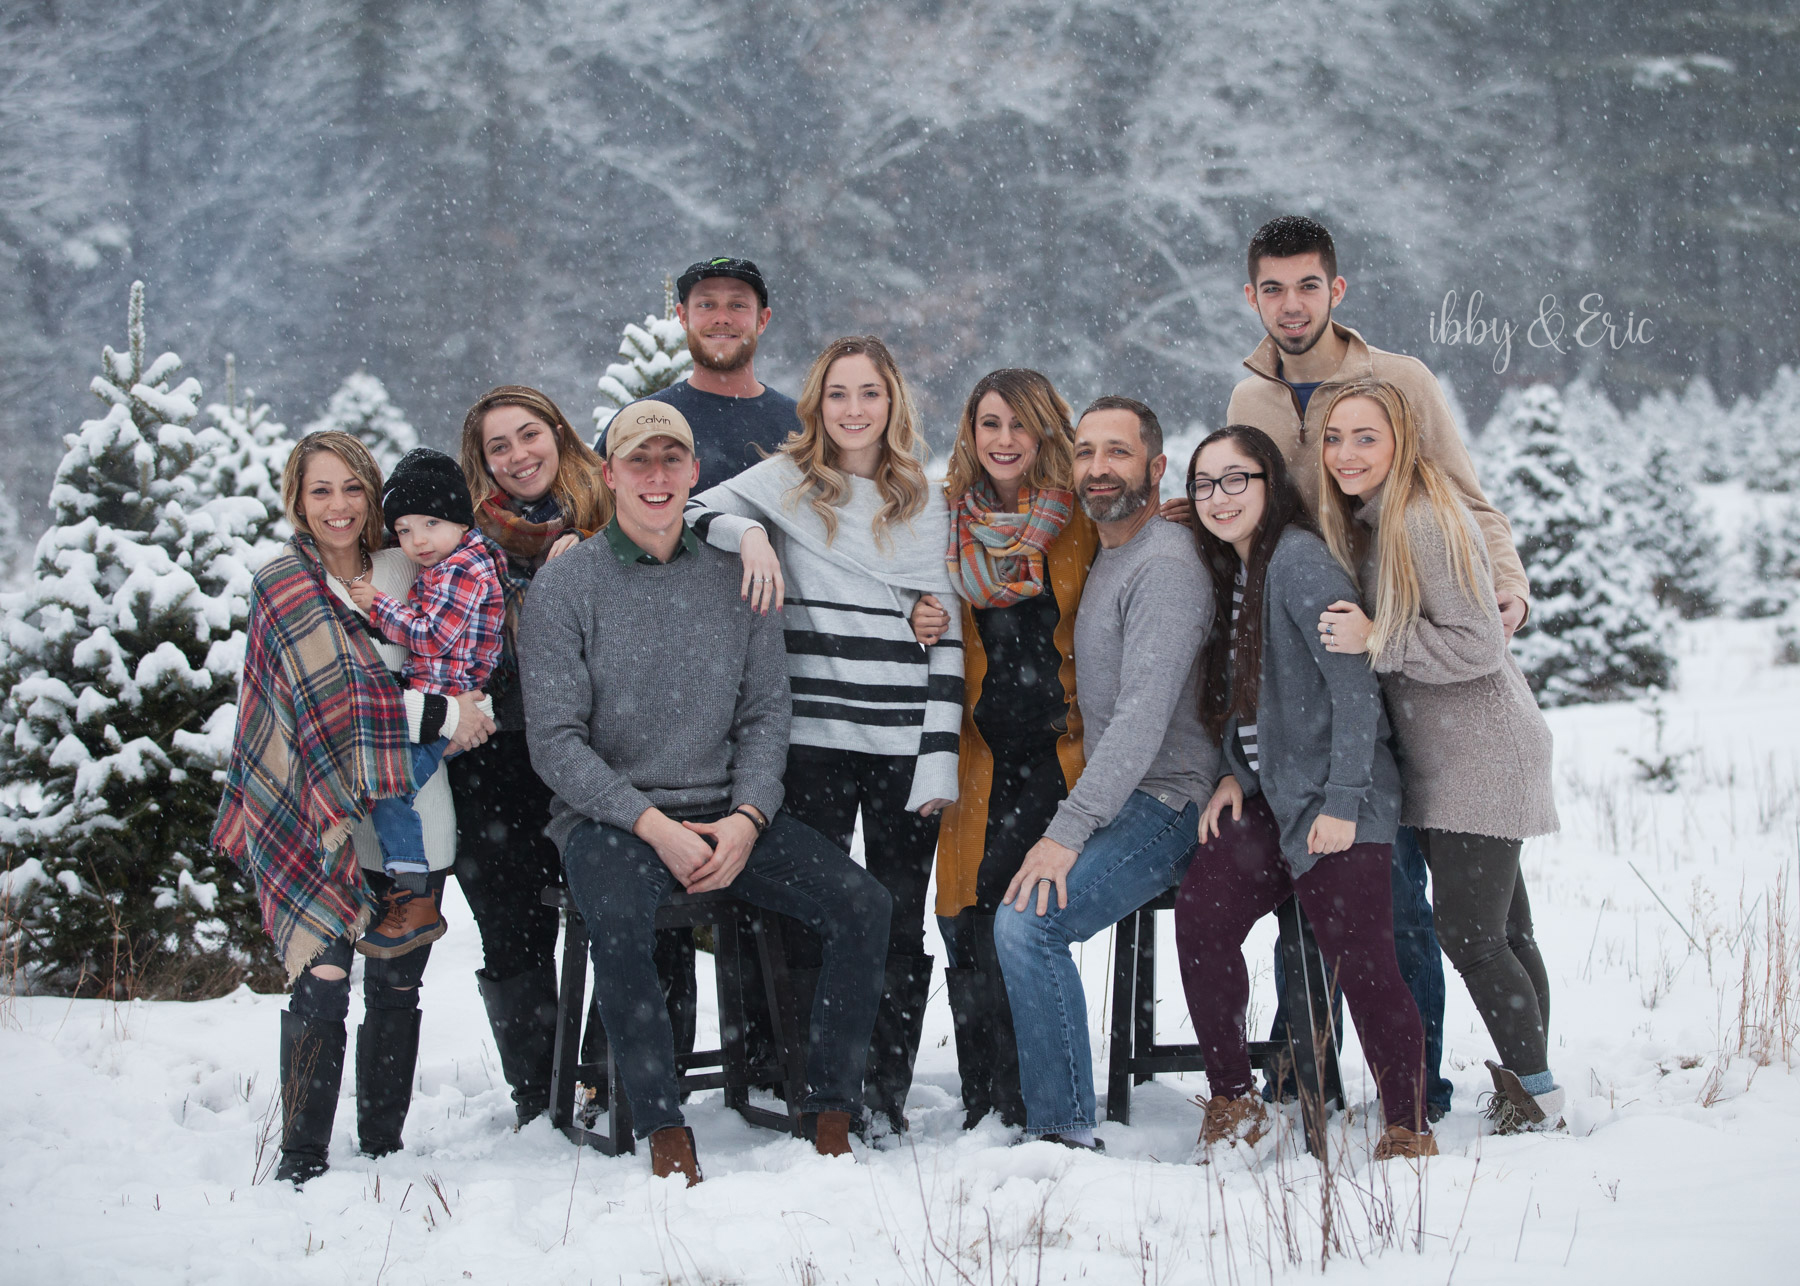 Family of 11 wearing grey and beige pose together at a Westfield, MA Christmas tree farm in a snowstorm.